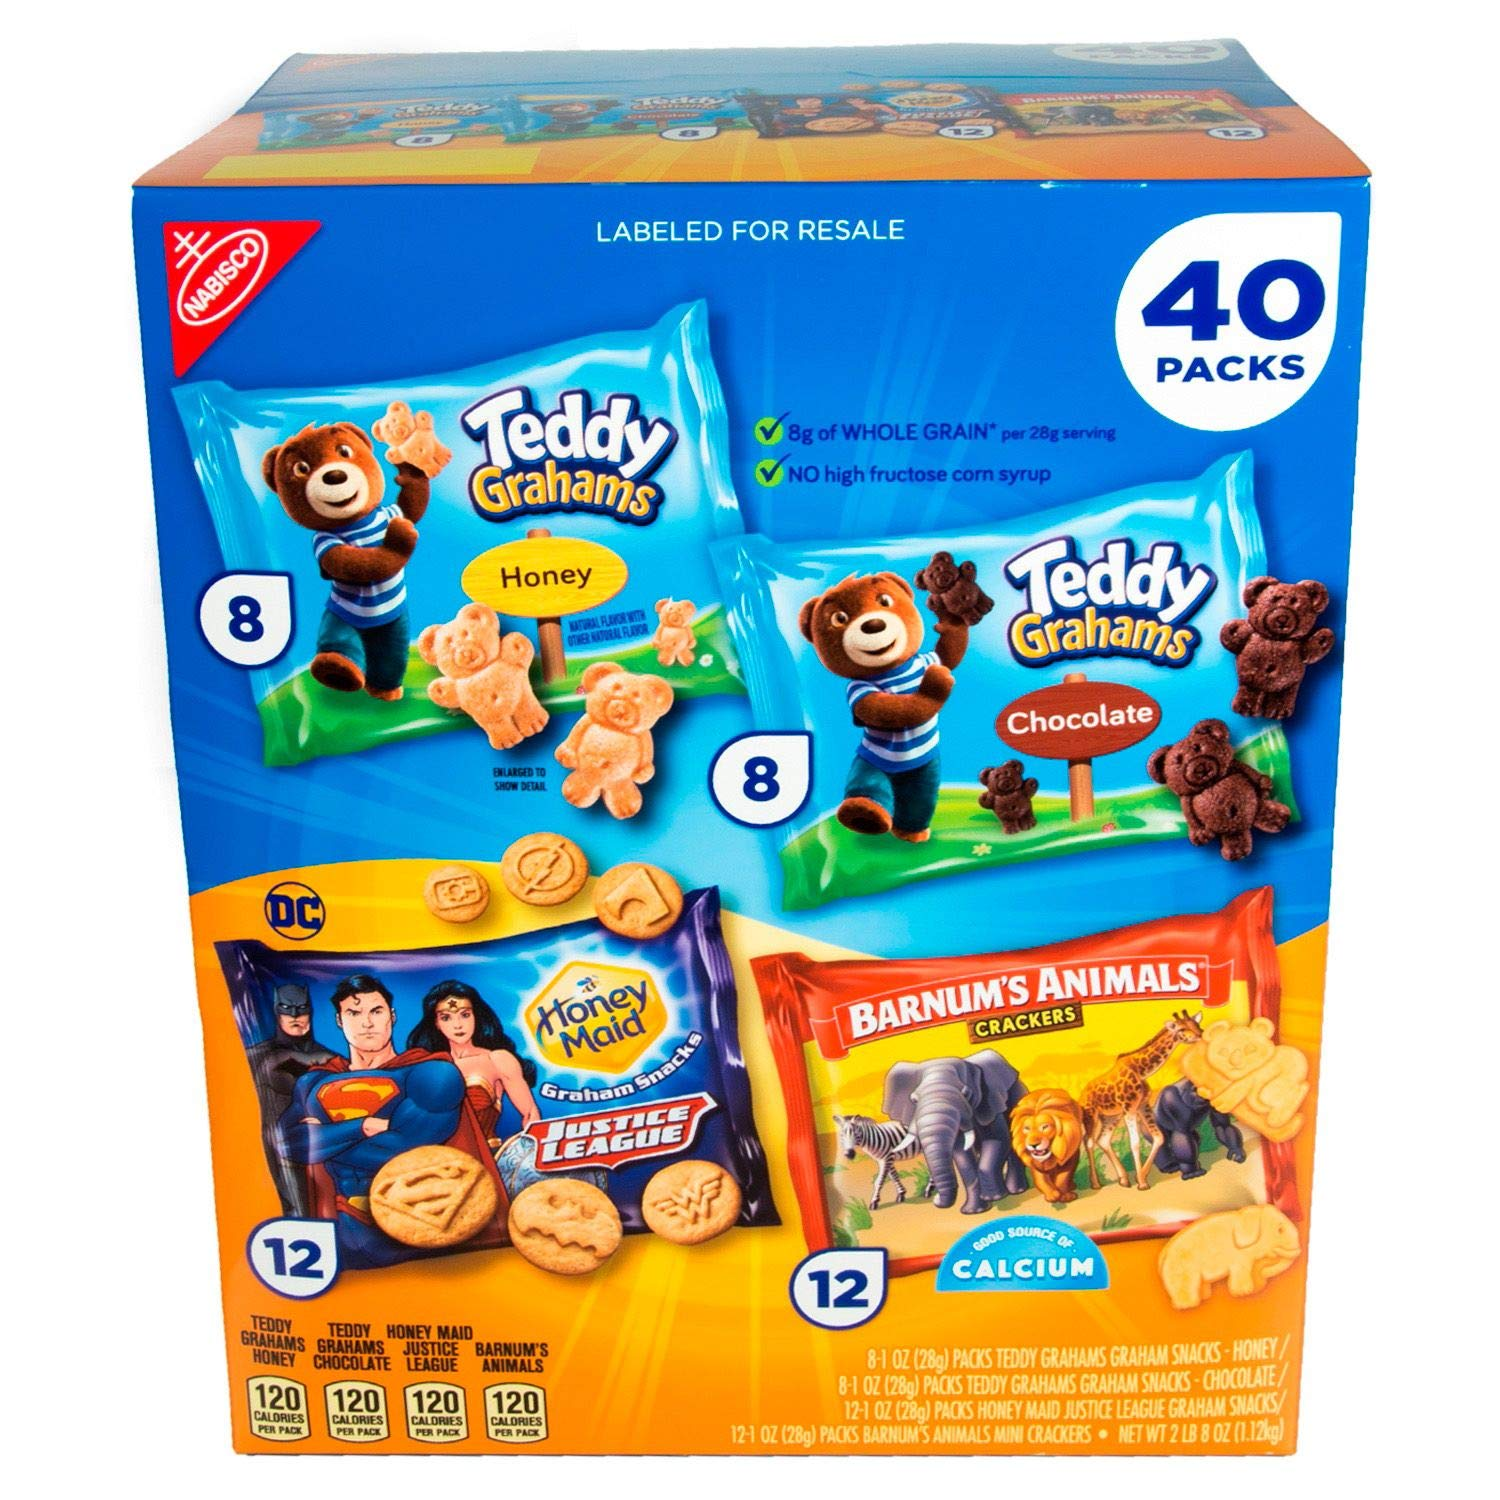 Nabisco Fun Shapes Snack Cookies Variety 3 pk. Pack of pack 40 1 year warranty Surprise price